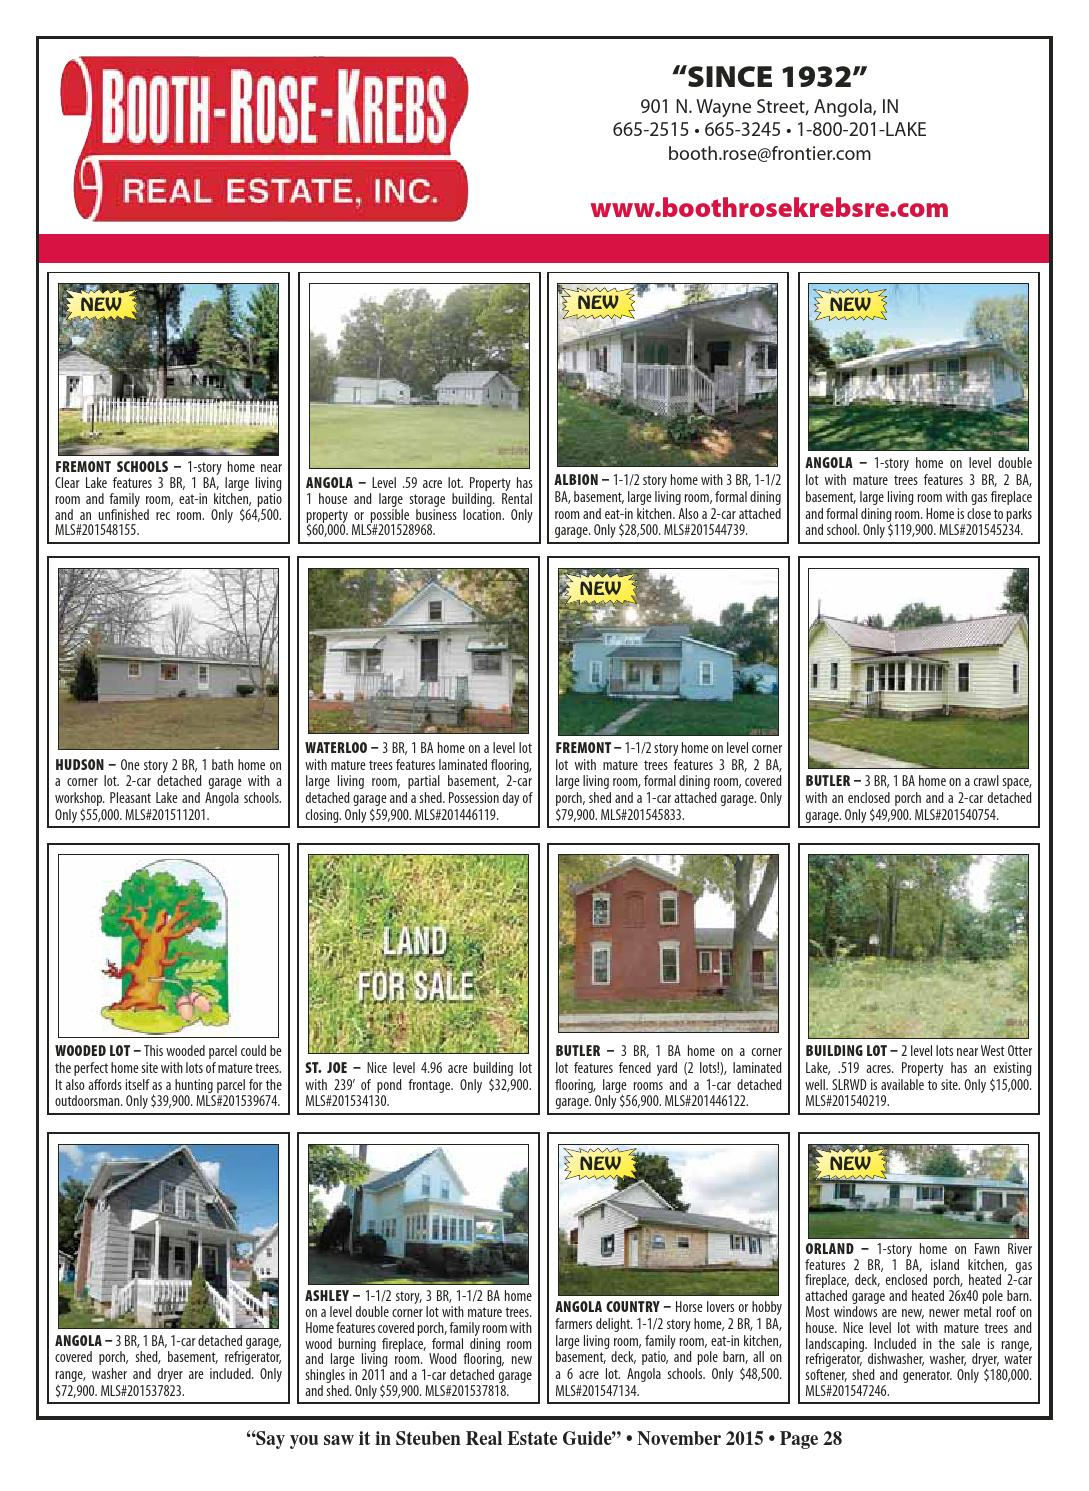 Steuben County Real Estate Guide - October 2015 by KPC Media